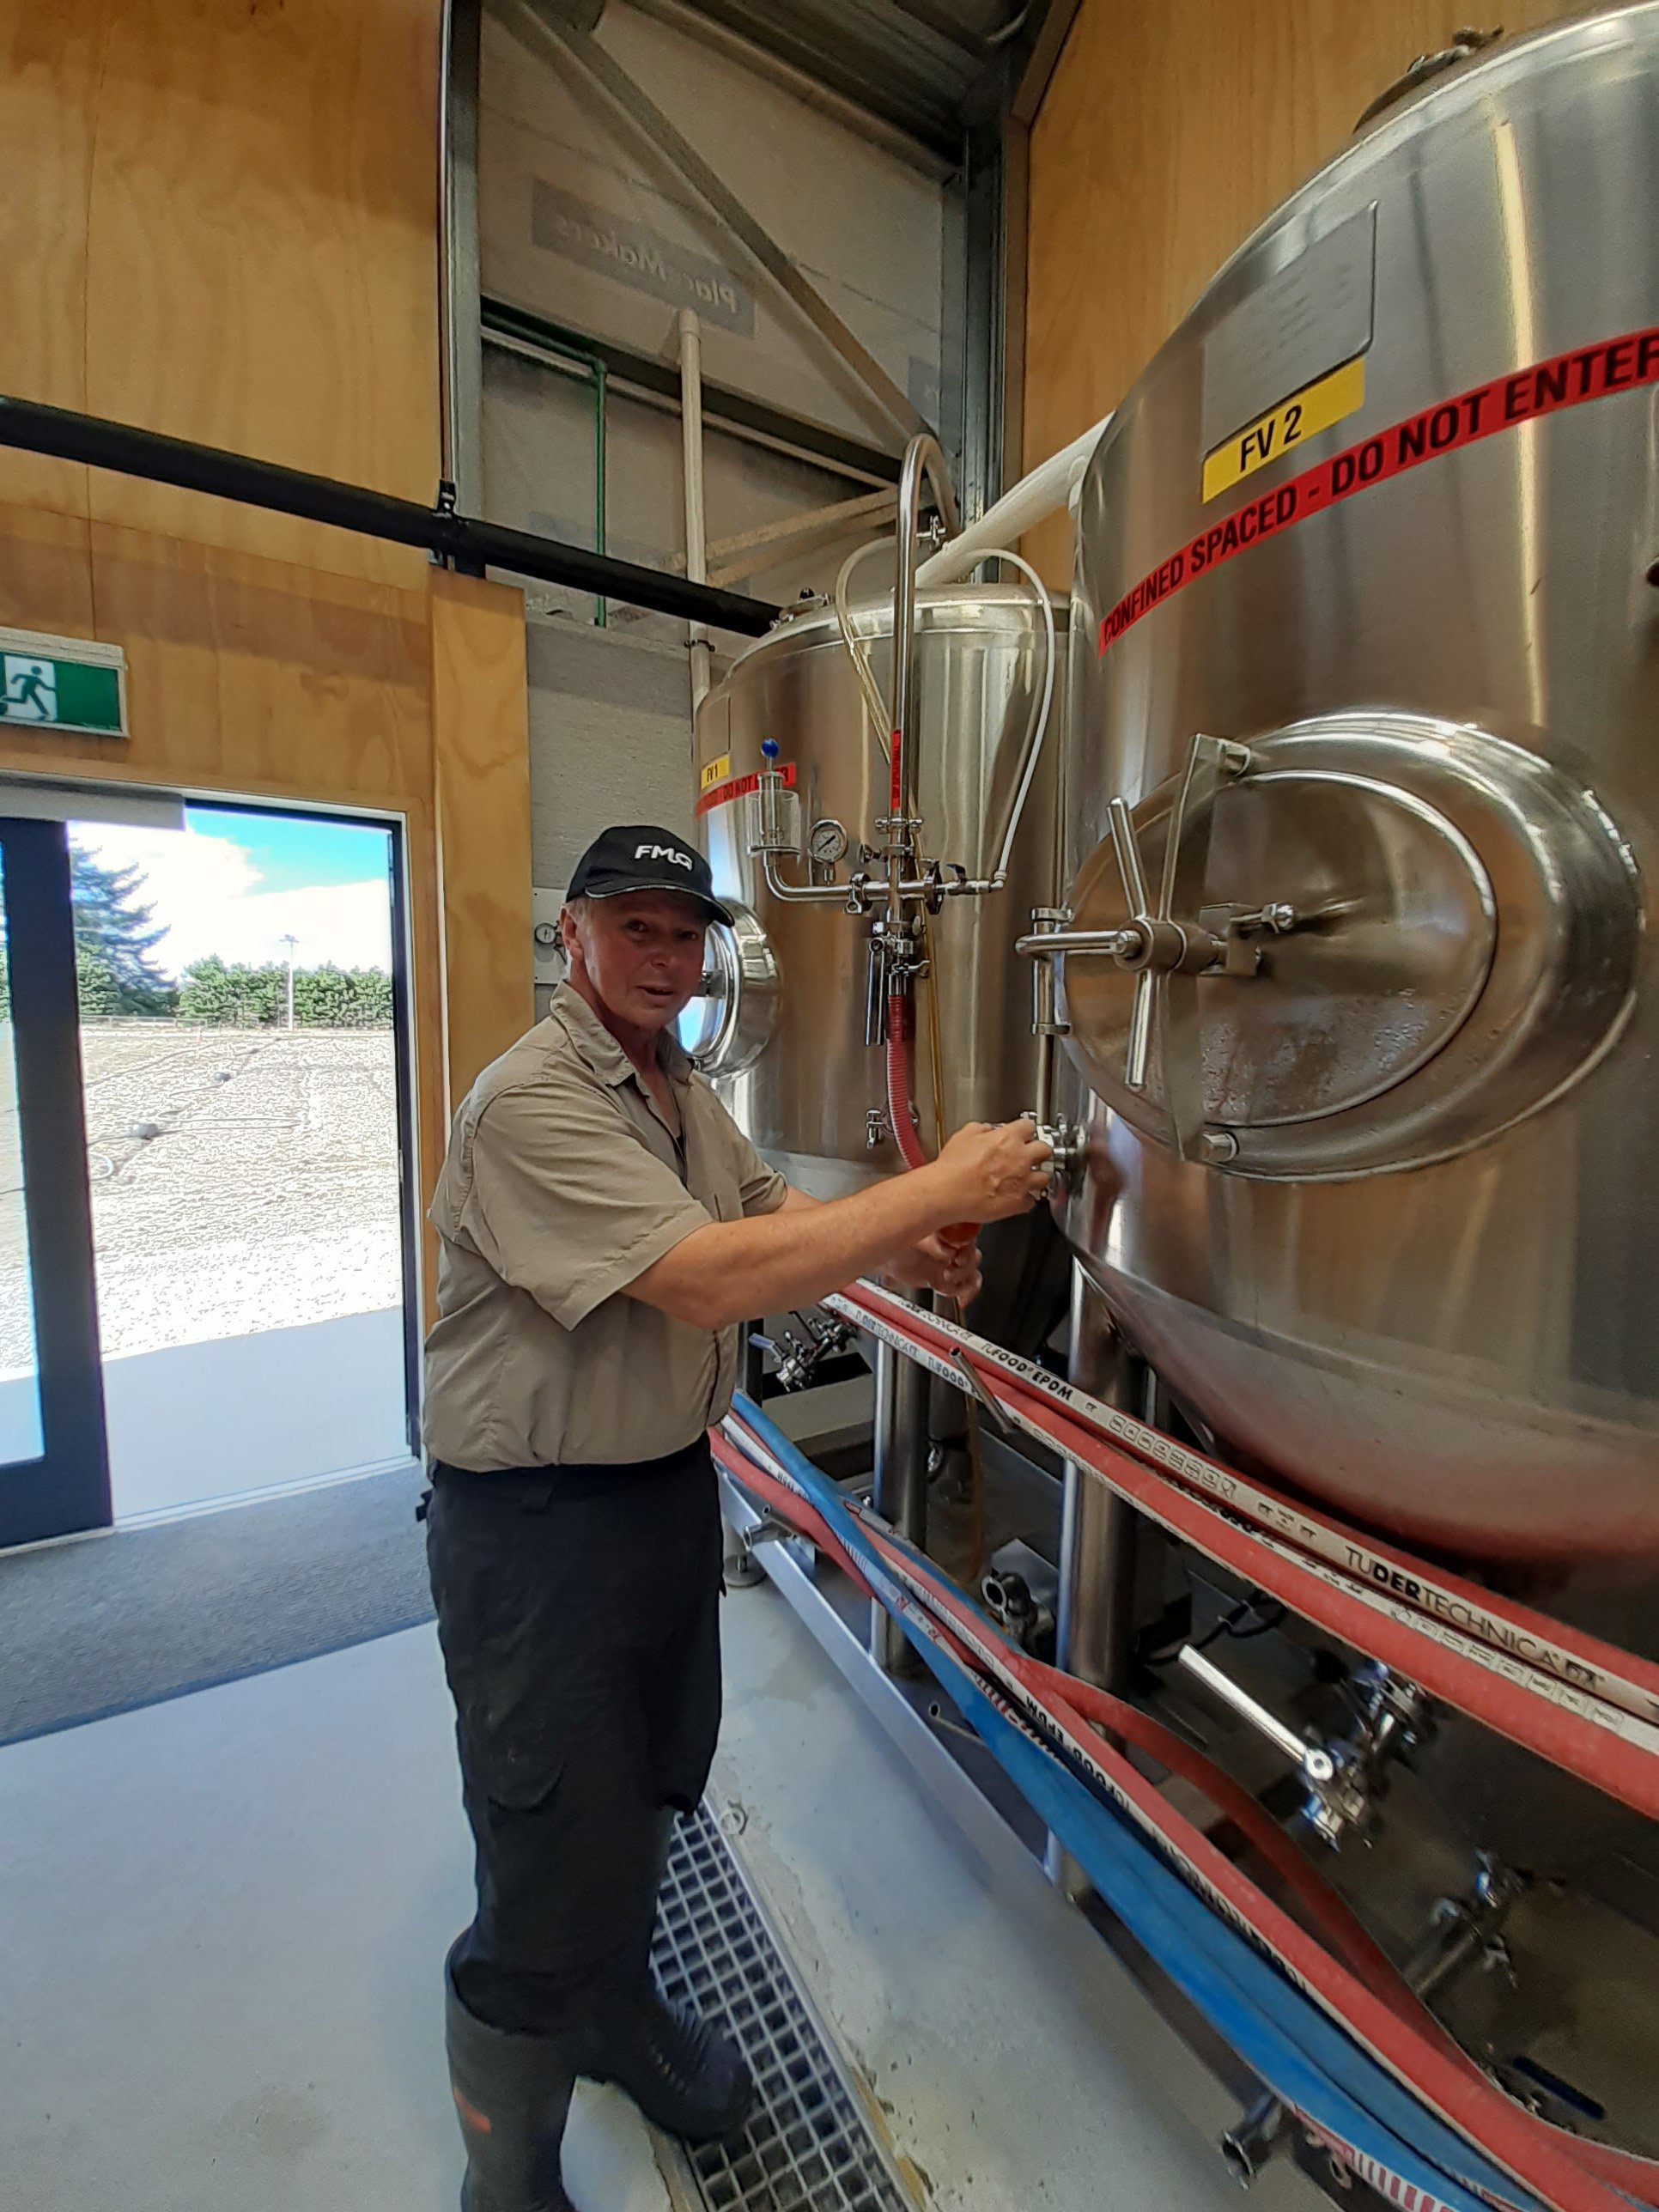 Grenville Caughey checks the product at the Otago Polytechnic Brew School's commercial brewery.